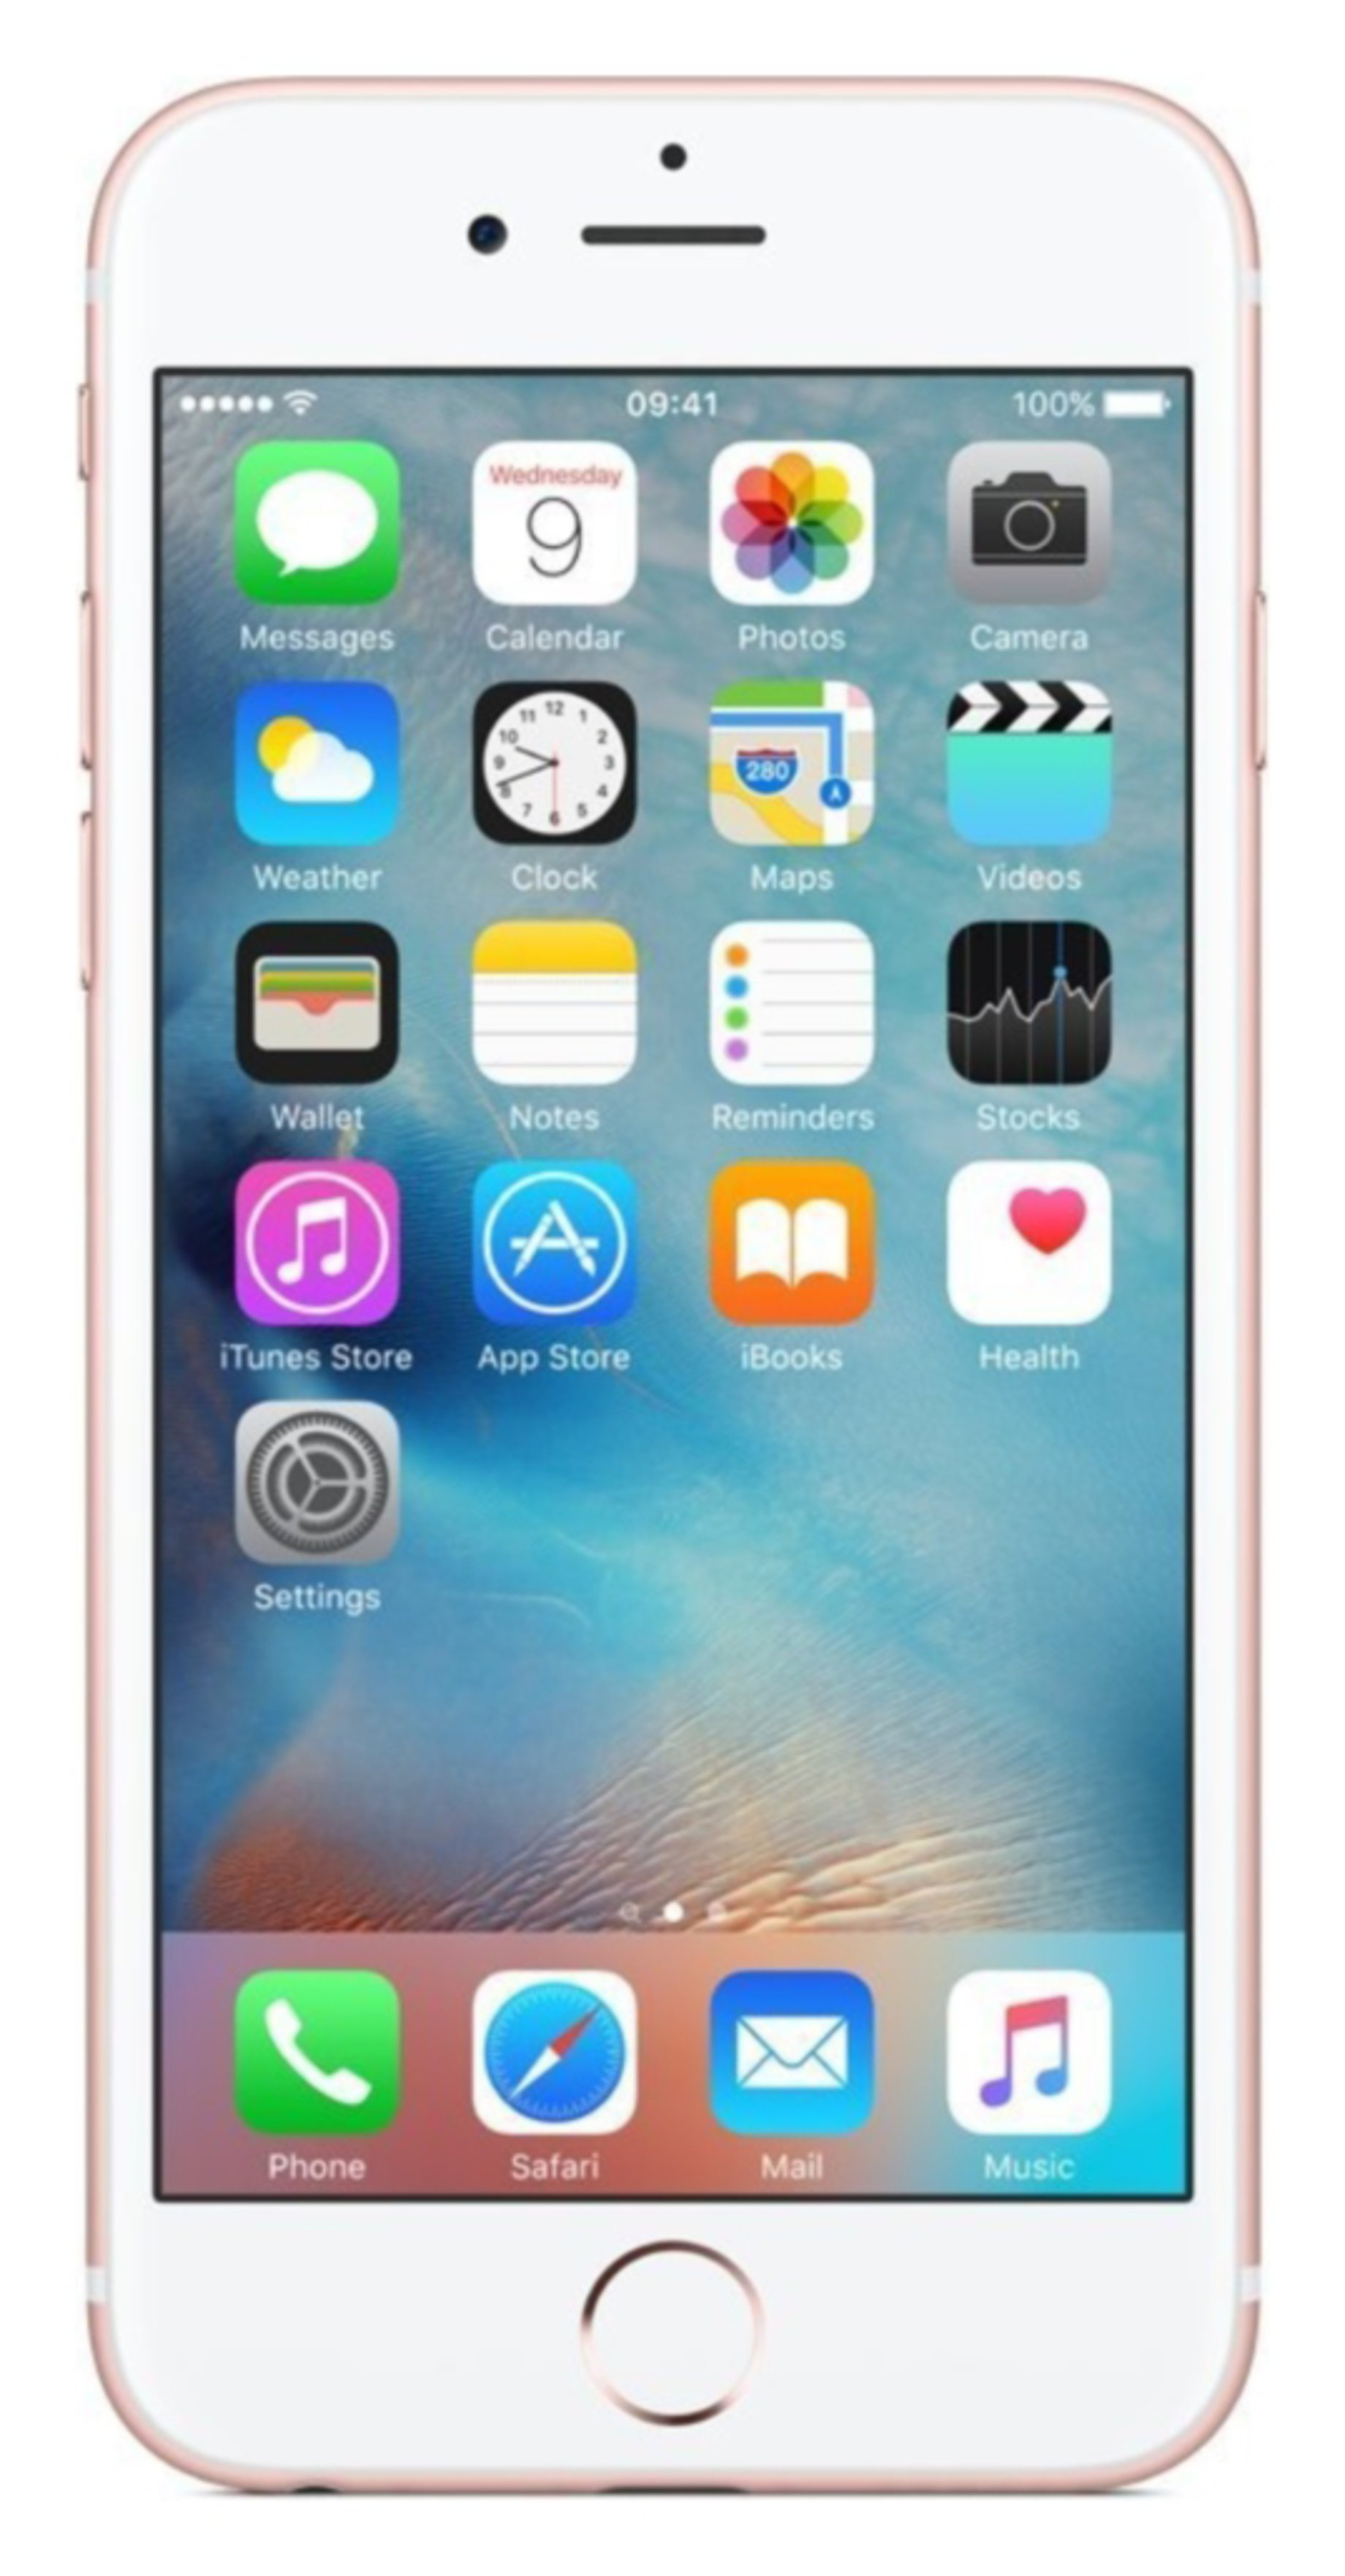 SIM Free iPhone 6S 16GB Refurbished Mobile Phone - Rose Gold